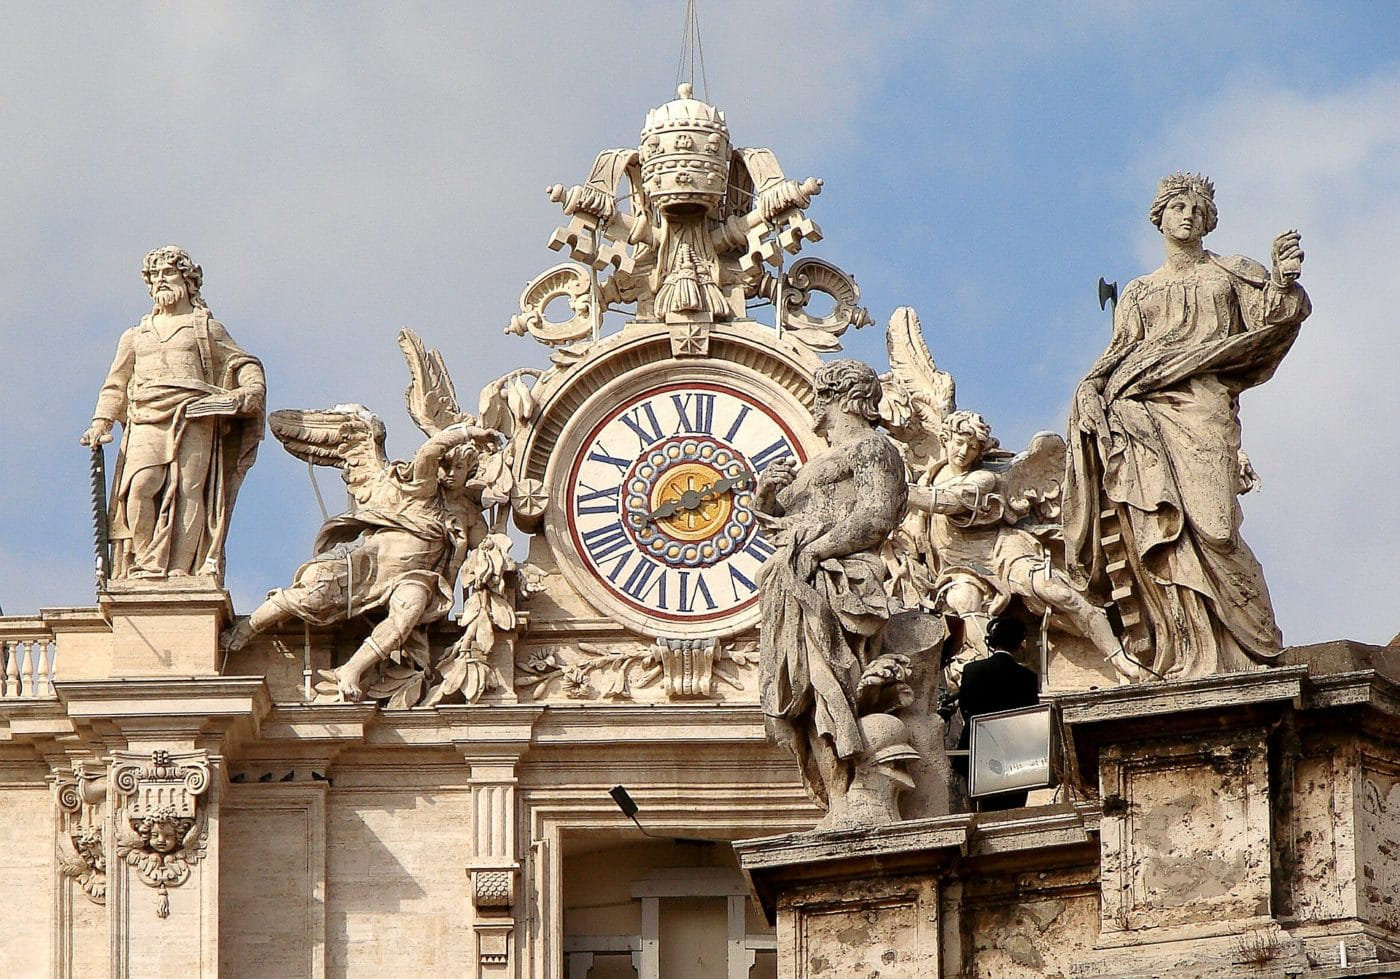 Things to see in Vatican City